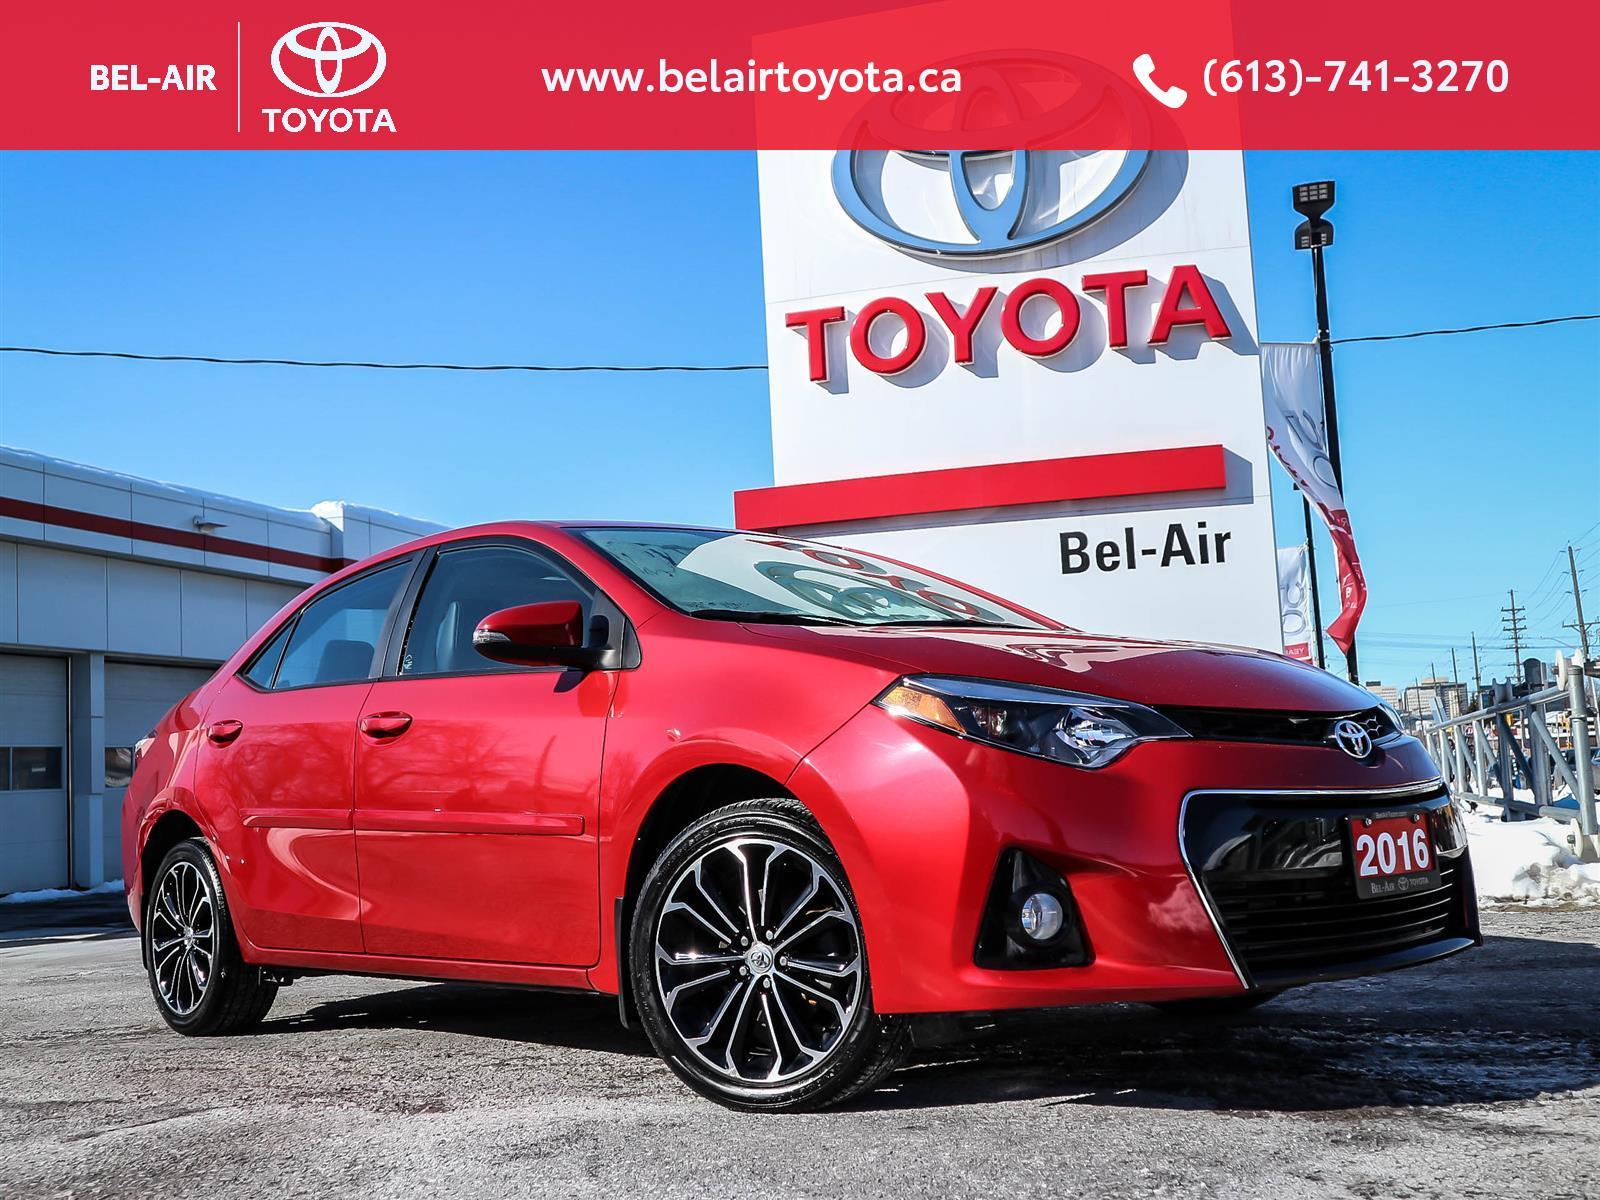 2016 Toyota Corolla at Bel-Air Toyota